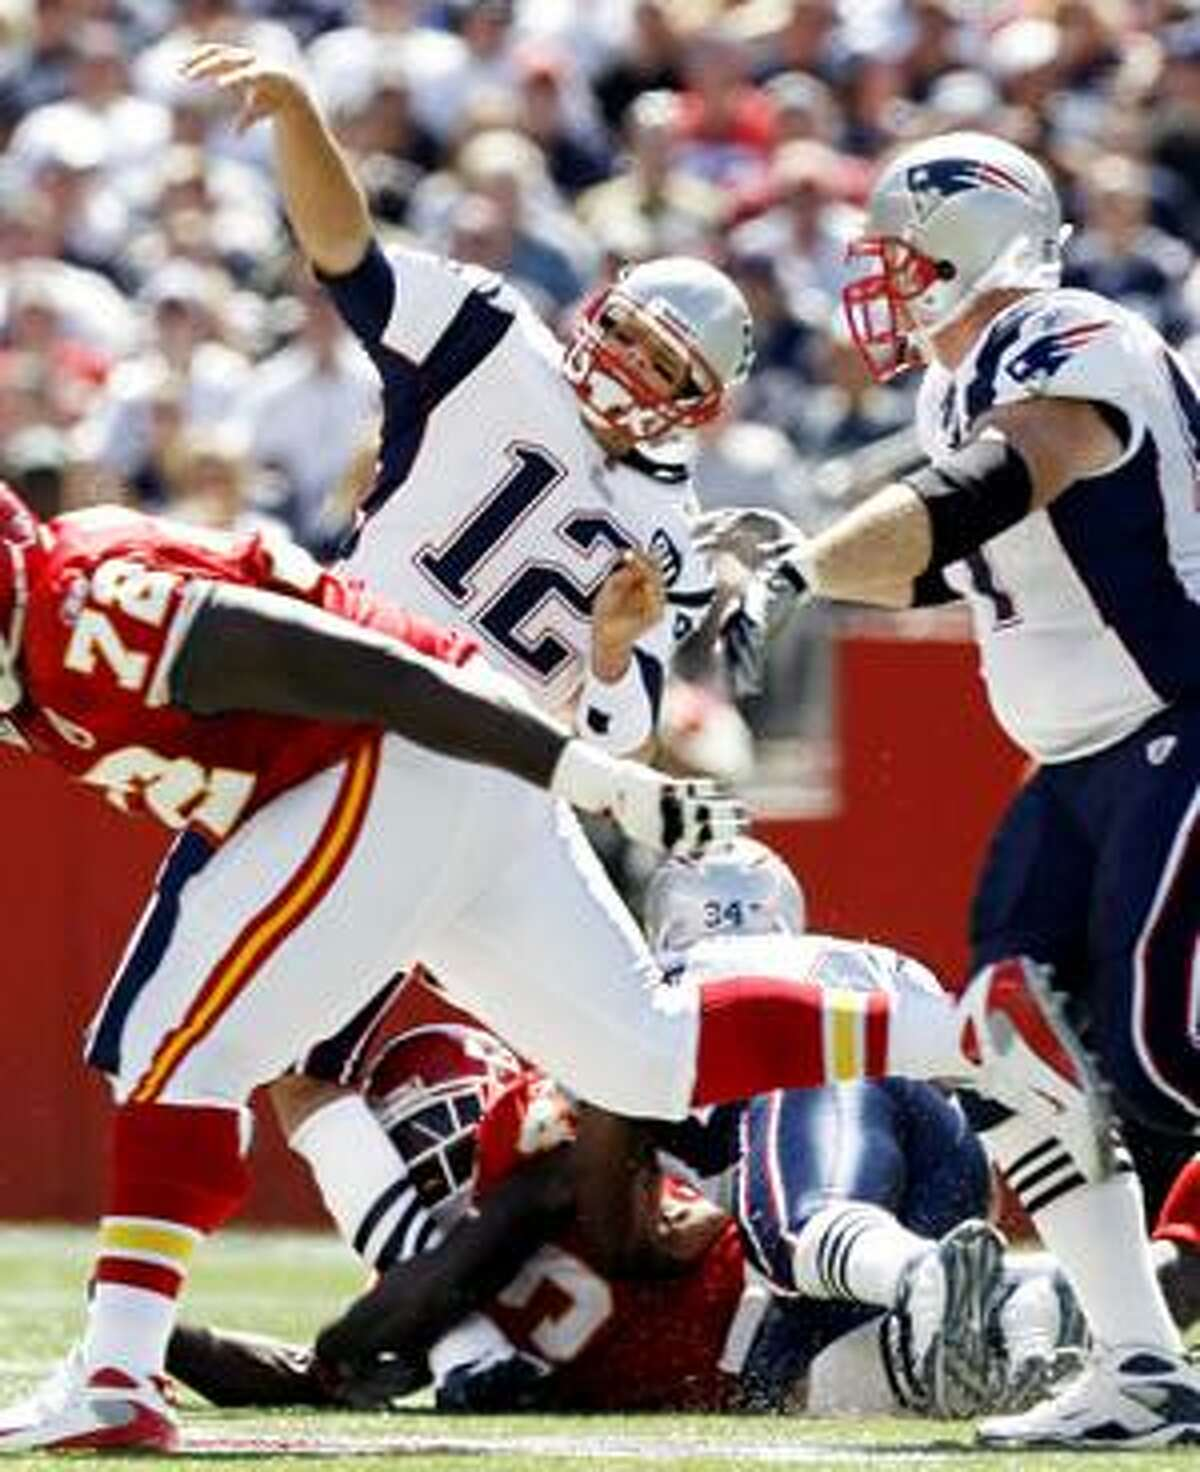 In this Sept. 7, 2008, file photo, New England Patriots quarterback Tom Brady (12) has his leg buckled by Kansas City Chiefs safety Bernard Pollard, bottom, during the first quarter at Gillette Stadium in Foxboro, Mass. The tackle Pollard was legal, though the NFL has since outlawed the type of lunge that hurt Brady.